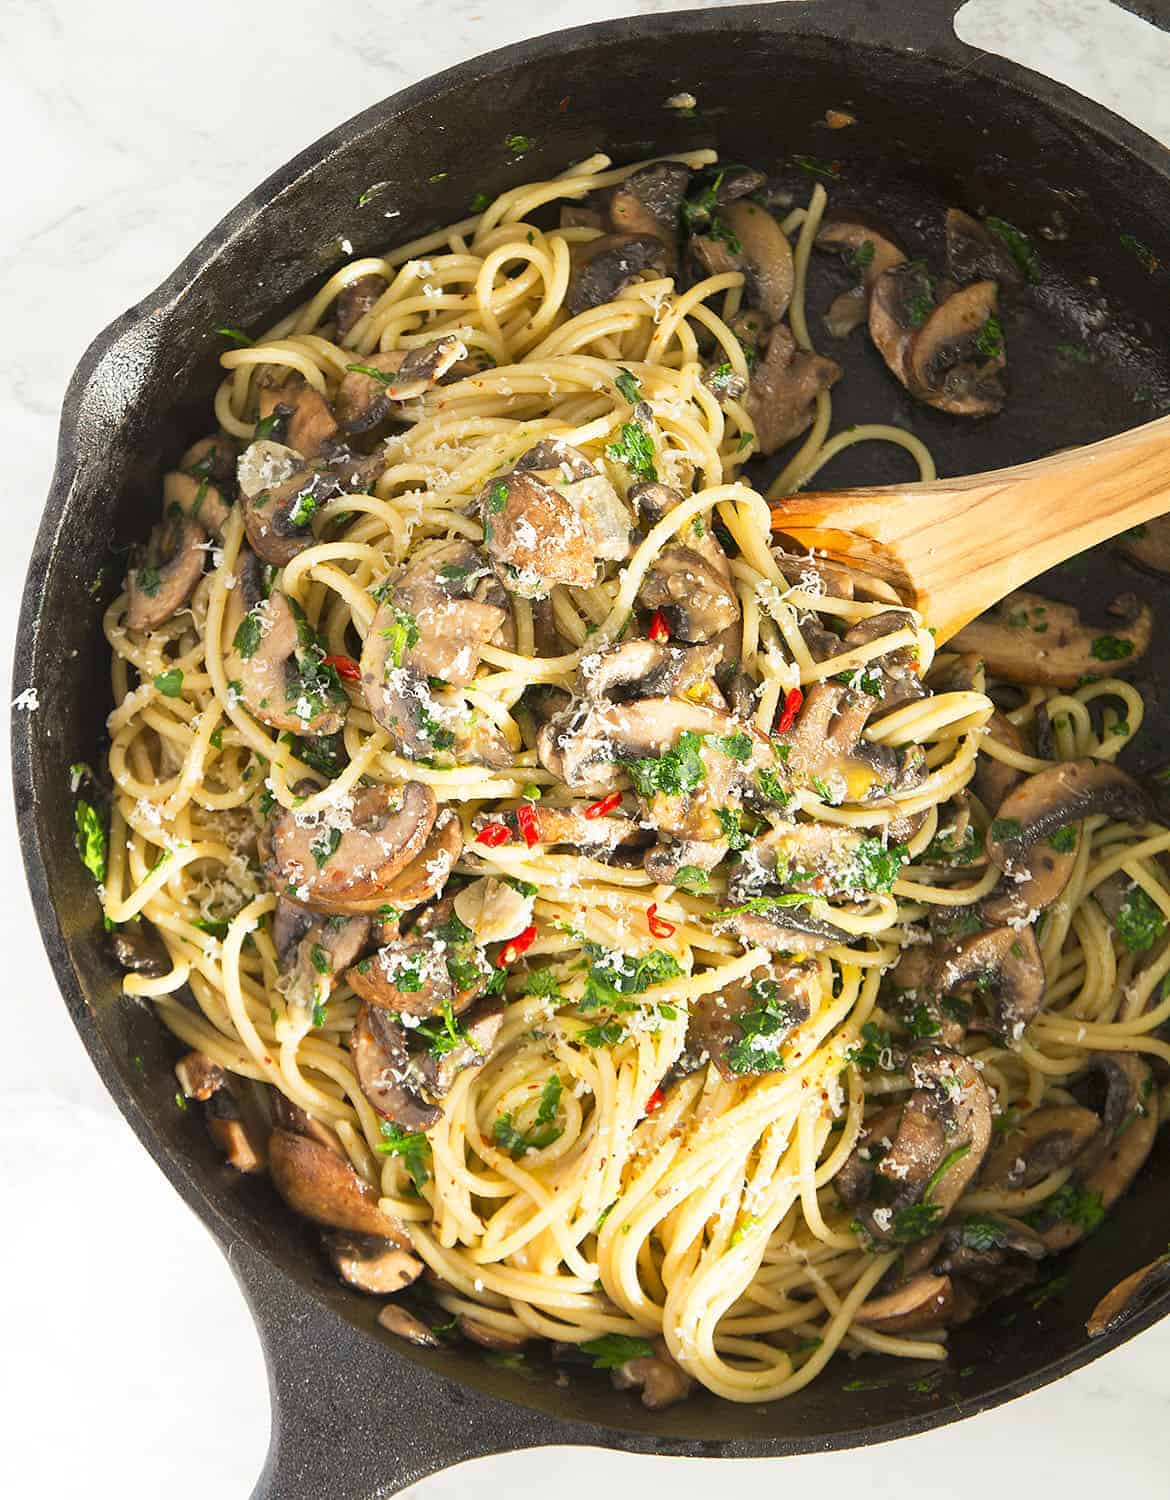 A wooden spoon is stirring the garlic mushroom pasta in a cast iron skillet.